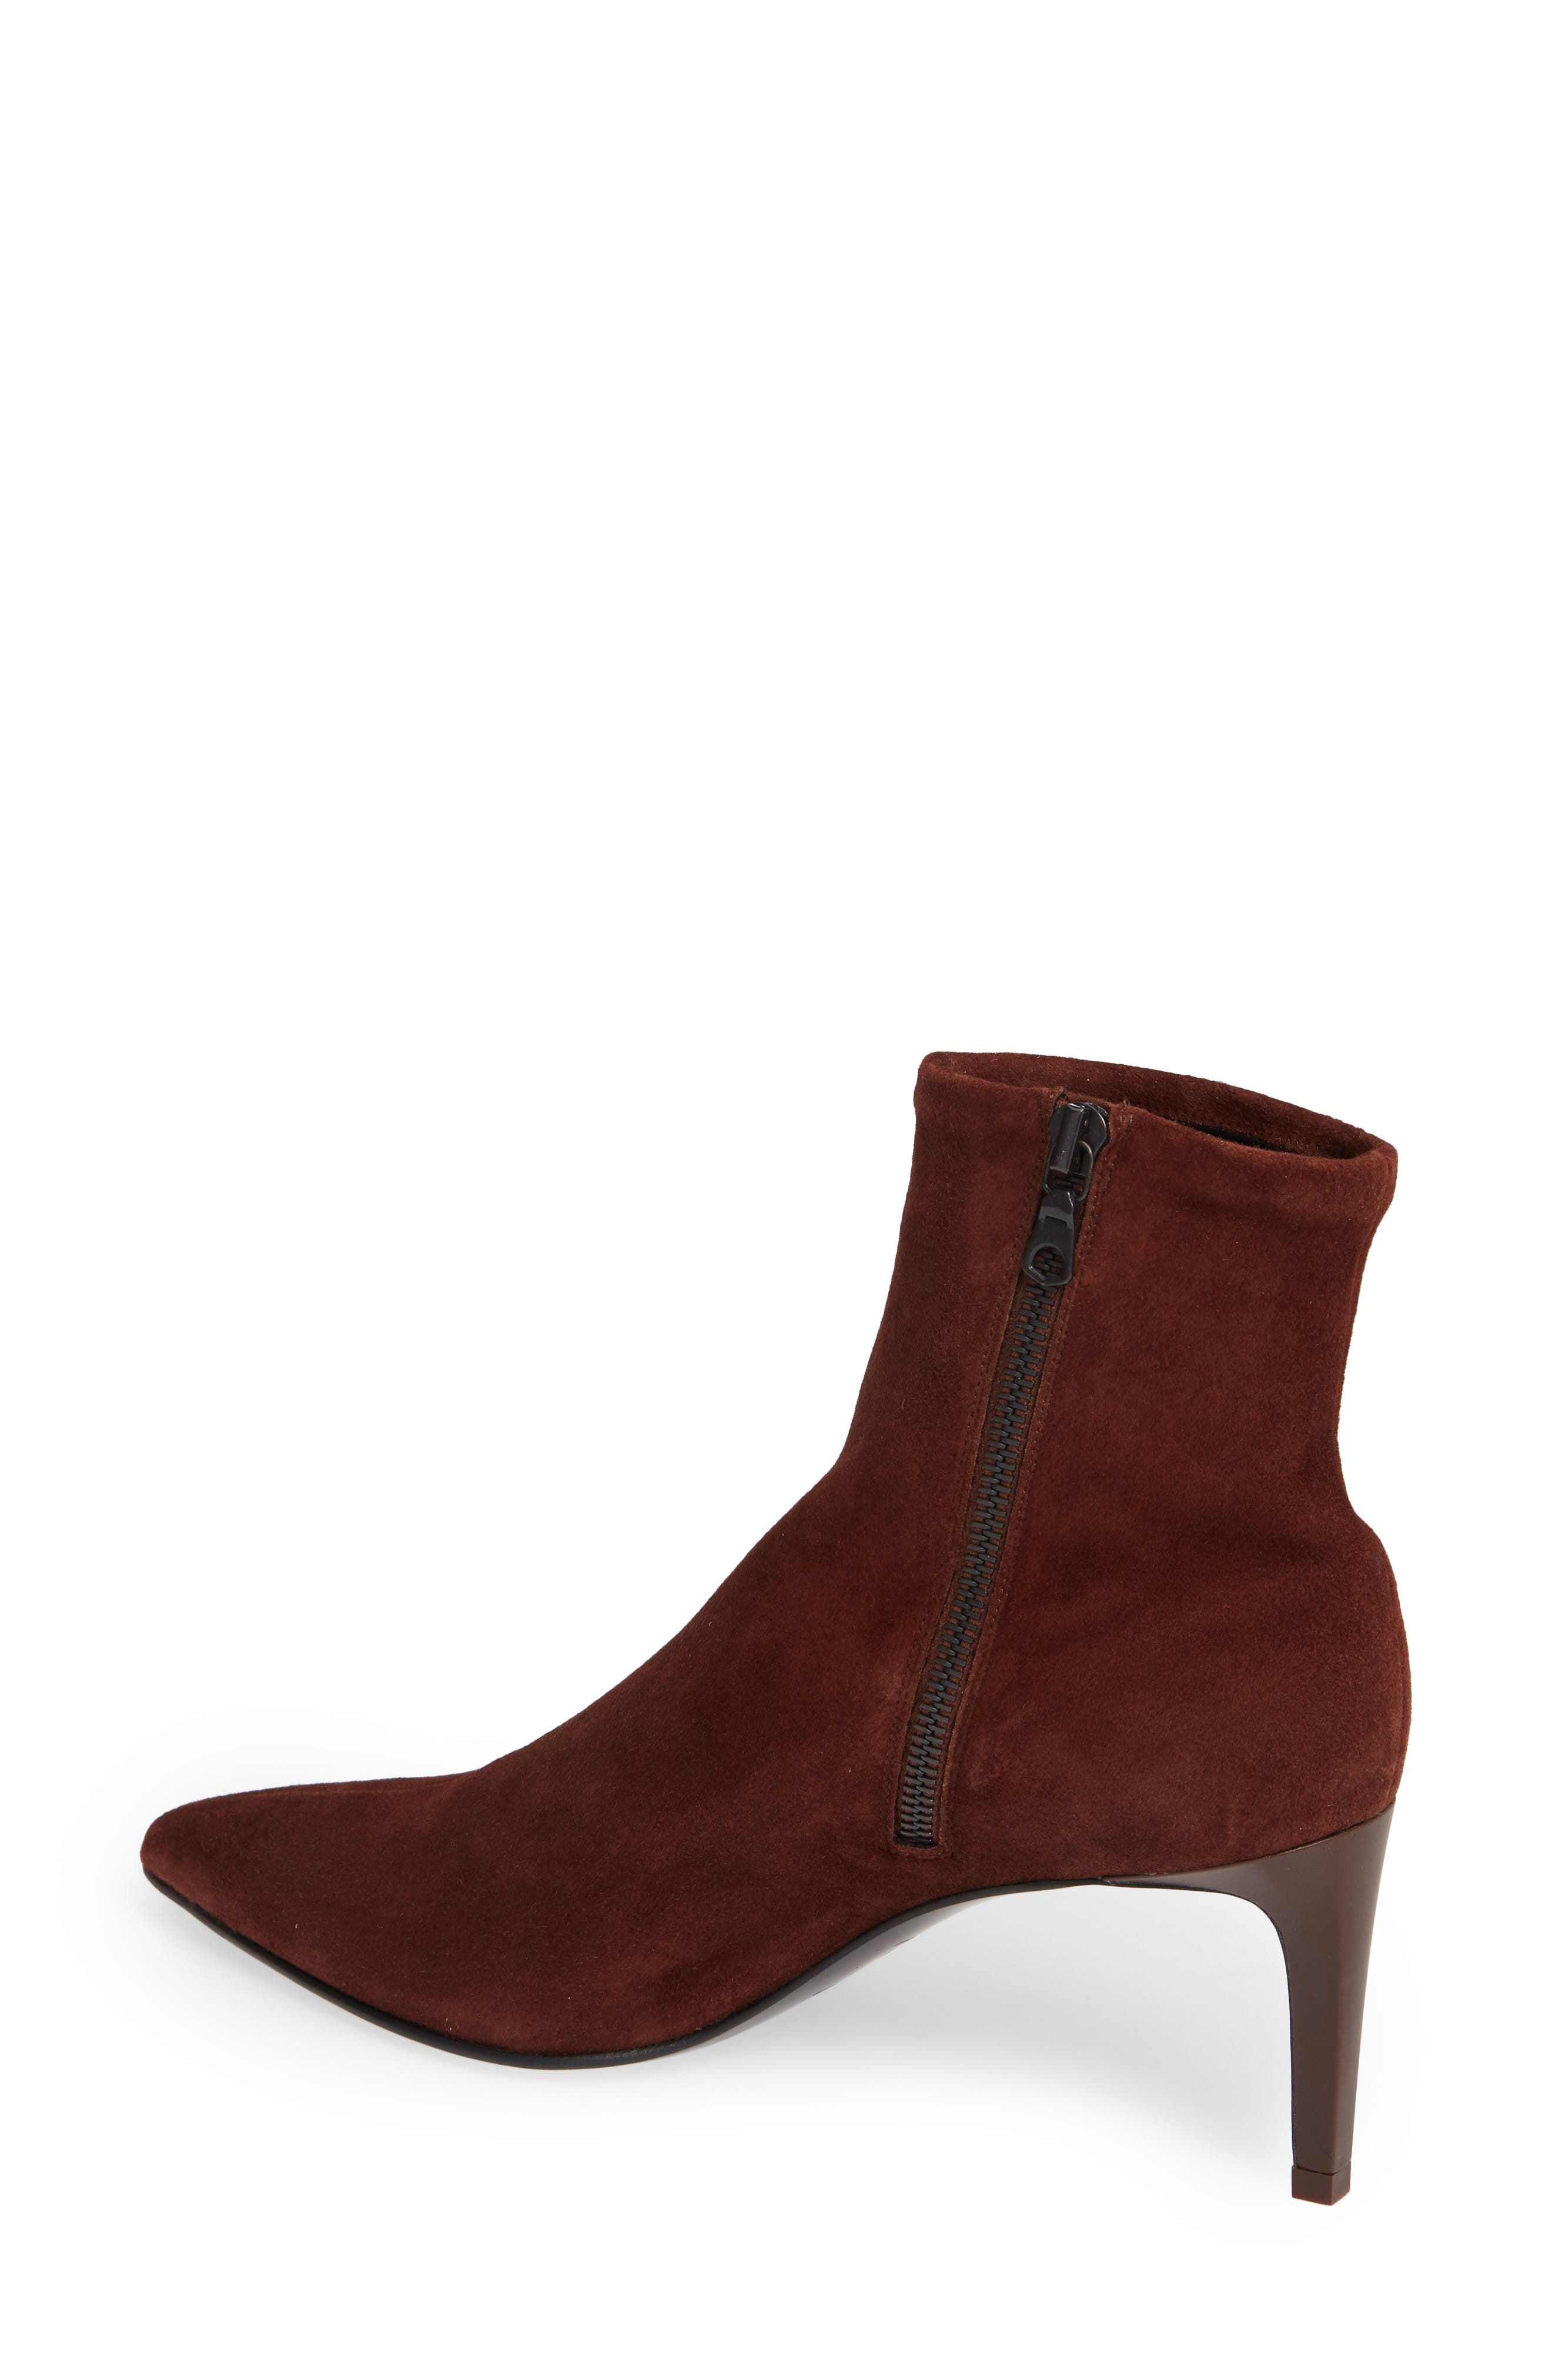 Beha Stretch Bootie,                             Alternate thumbnail 2, color,                             MAHOGANY SUEDE